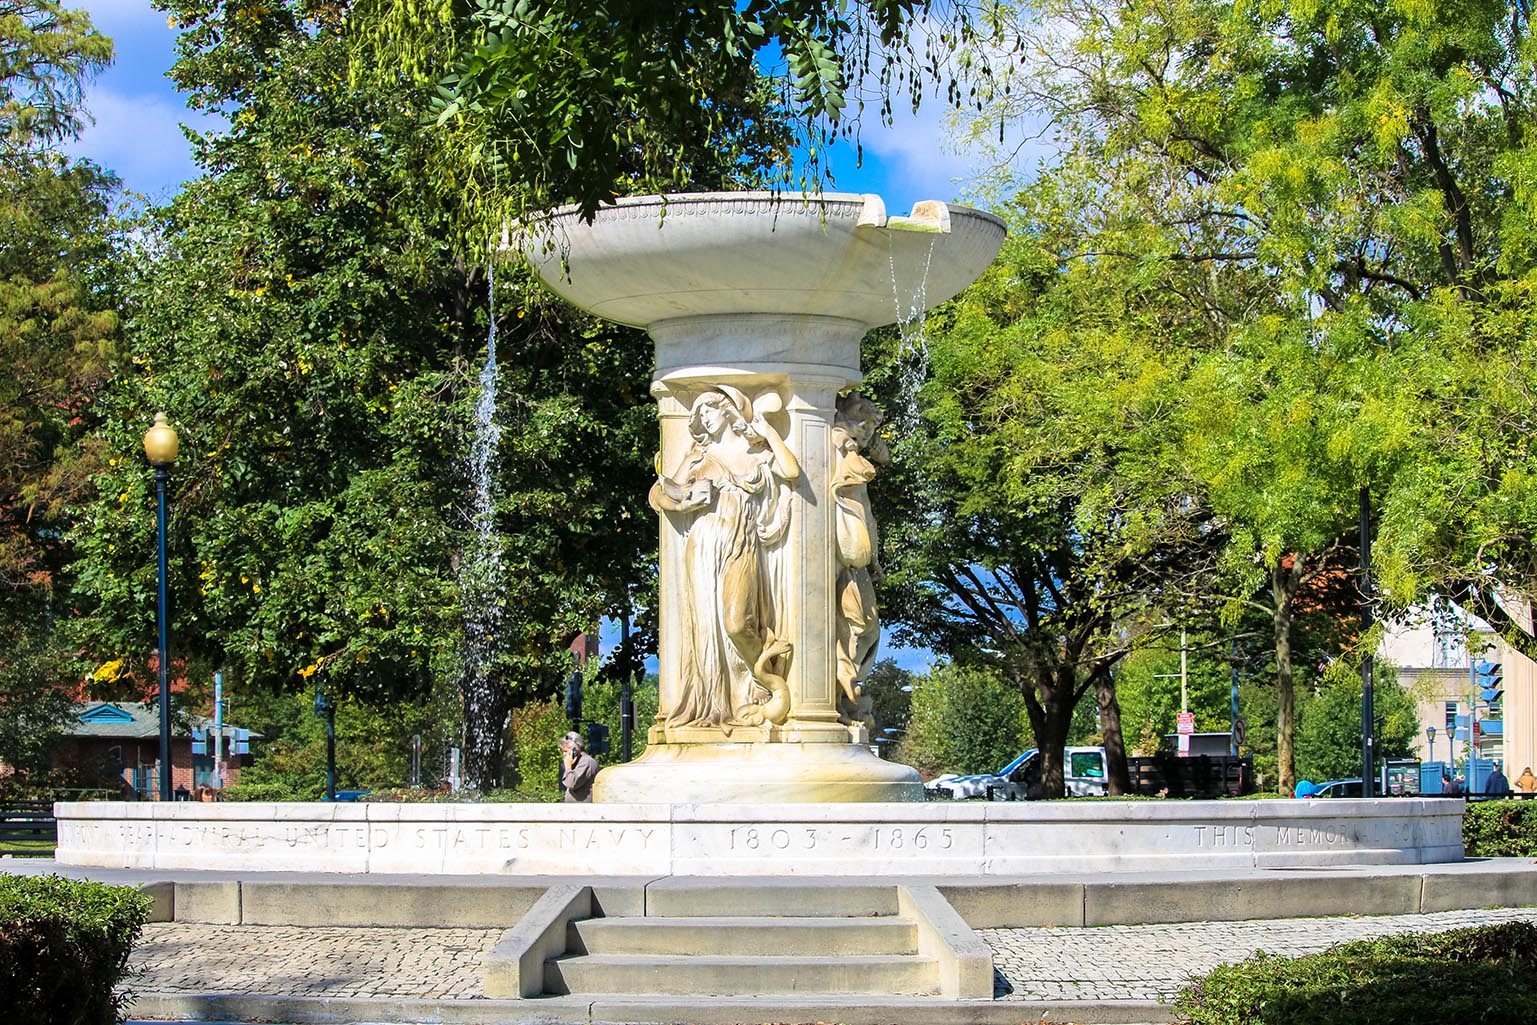 Fountain in Dupont Circle, Washington, D.C.